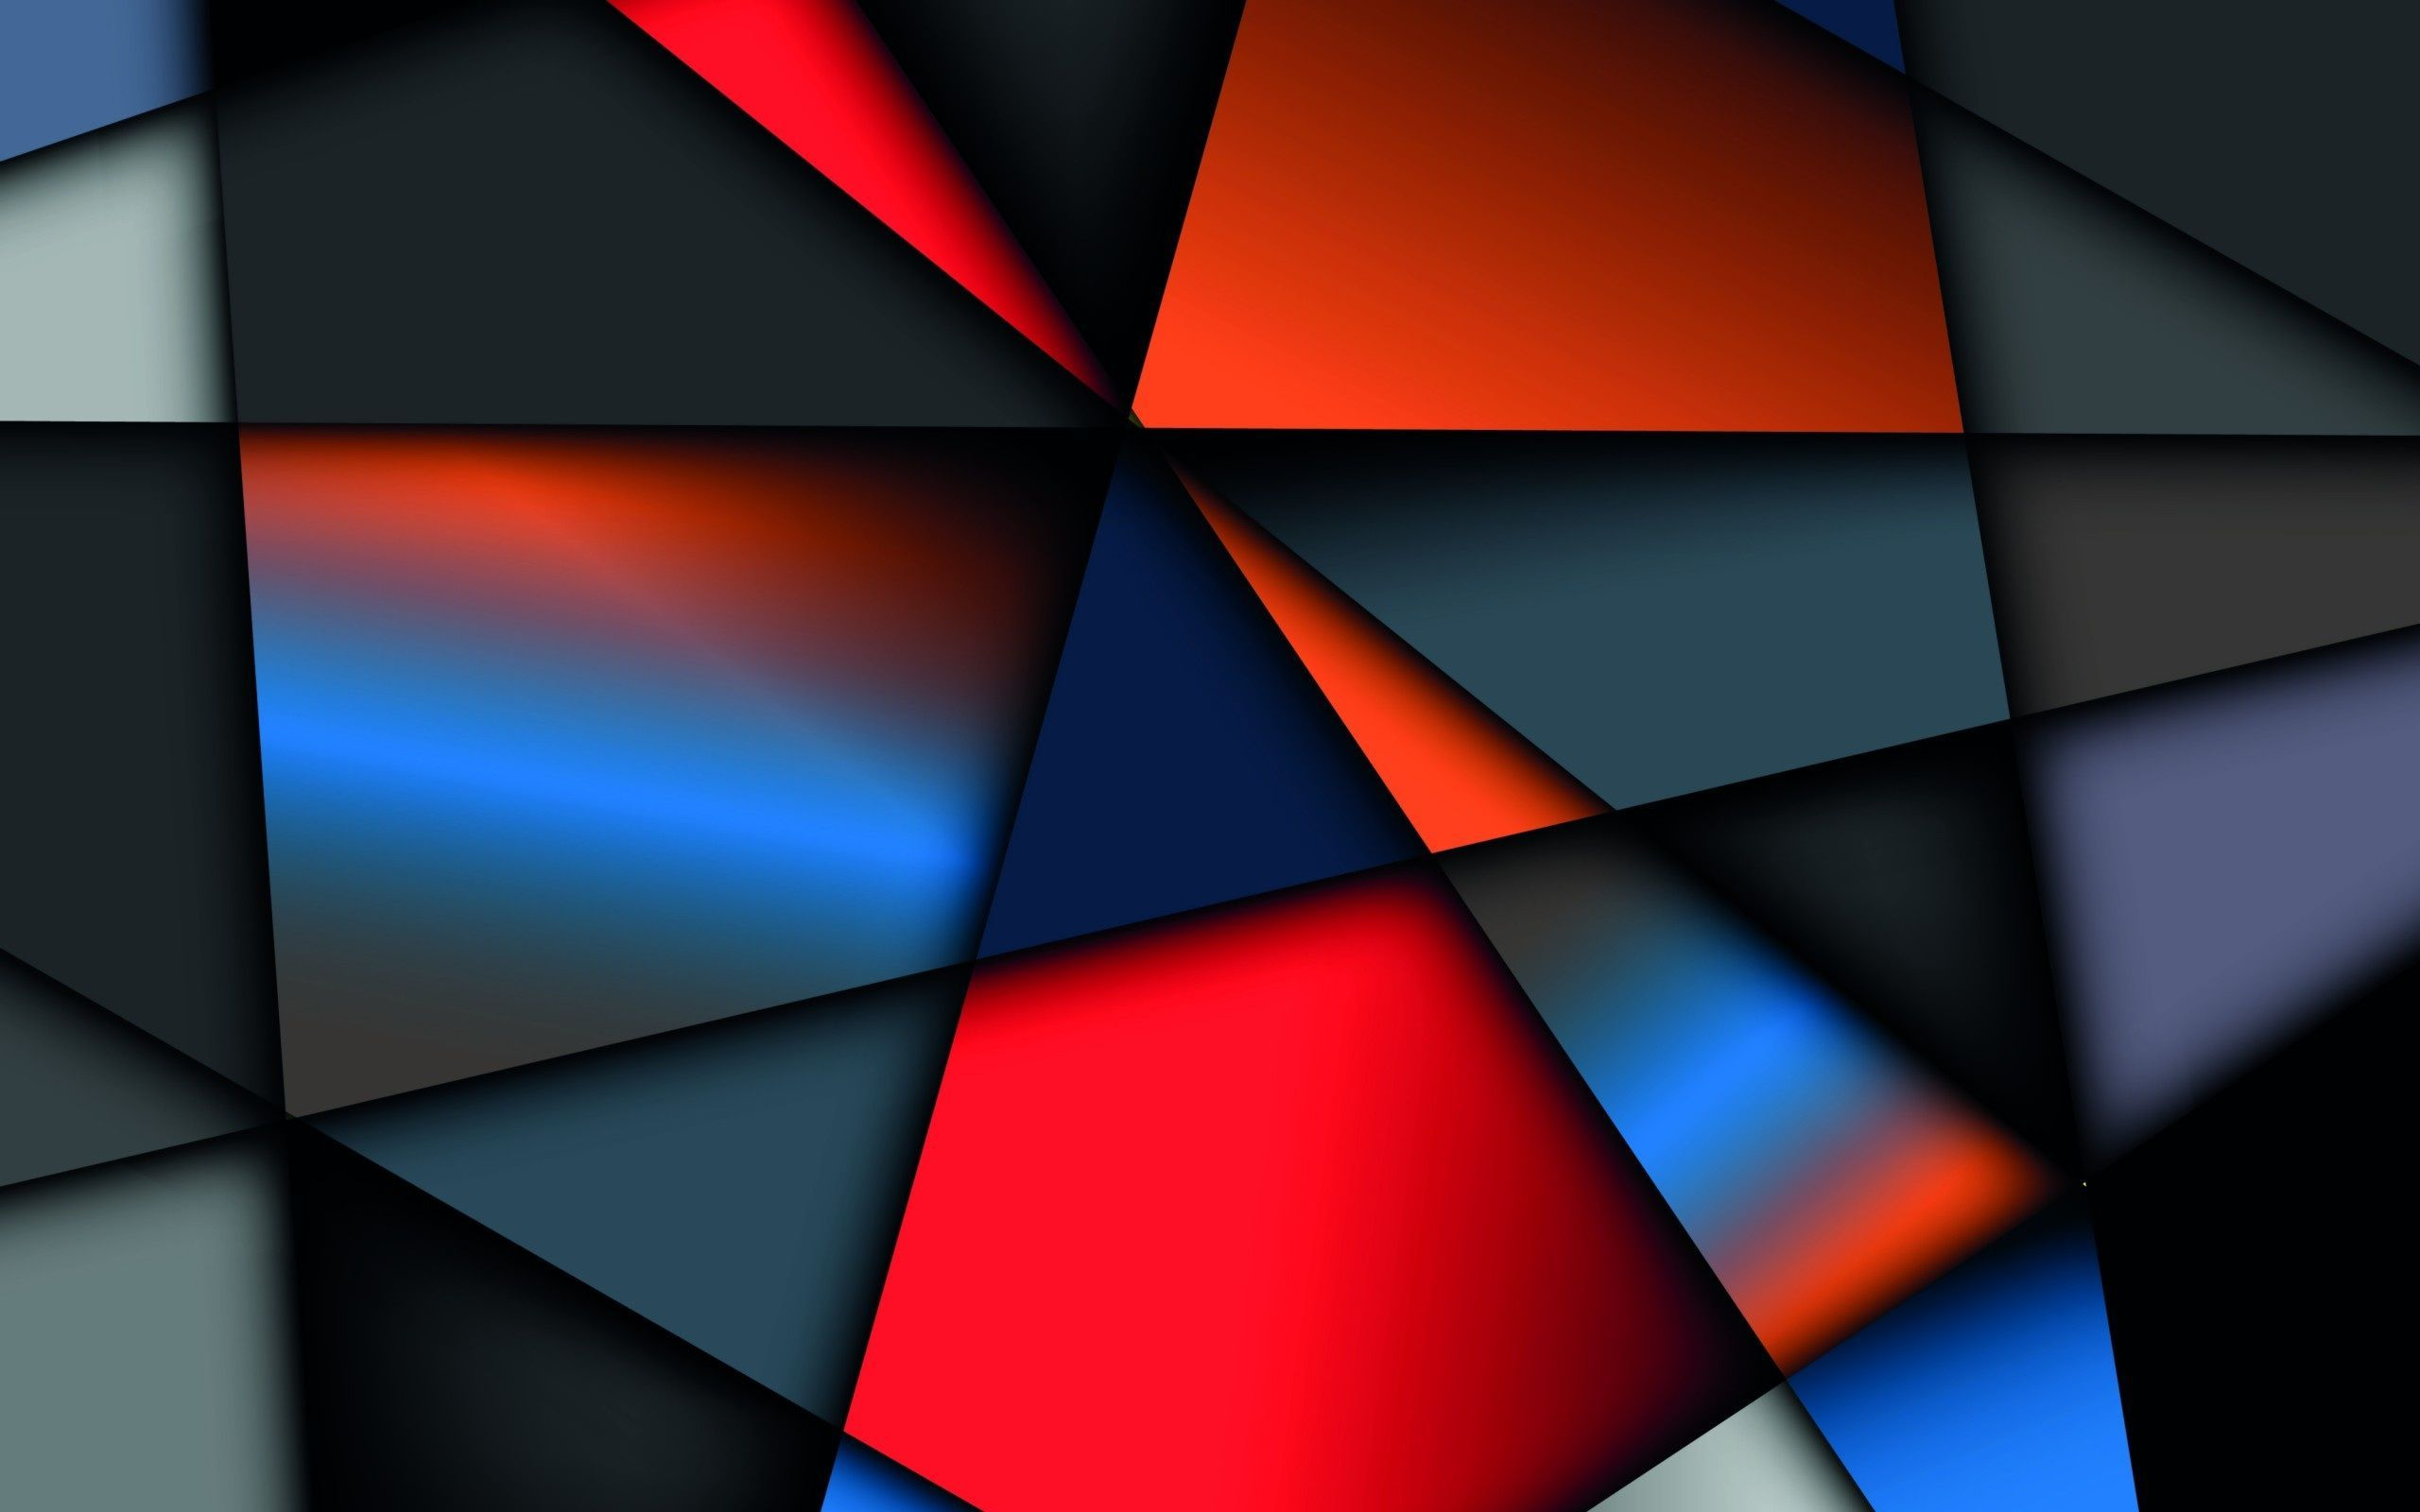 3d And Abstract Ultra Hd Wallpapers 4 Ultra High Definition Geometric Wallpaper Iphone Abstract Wallpaper Abstract